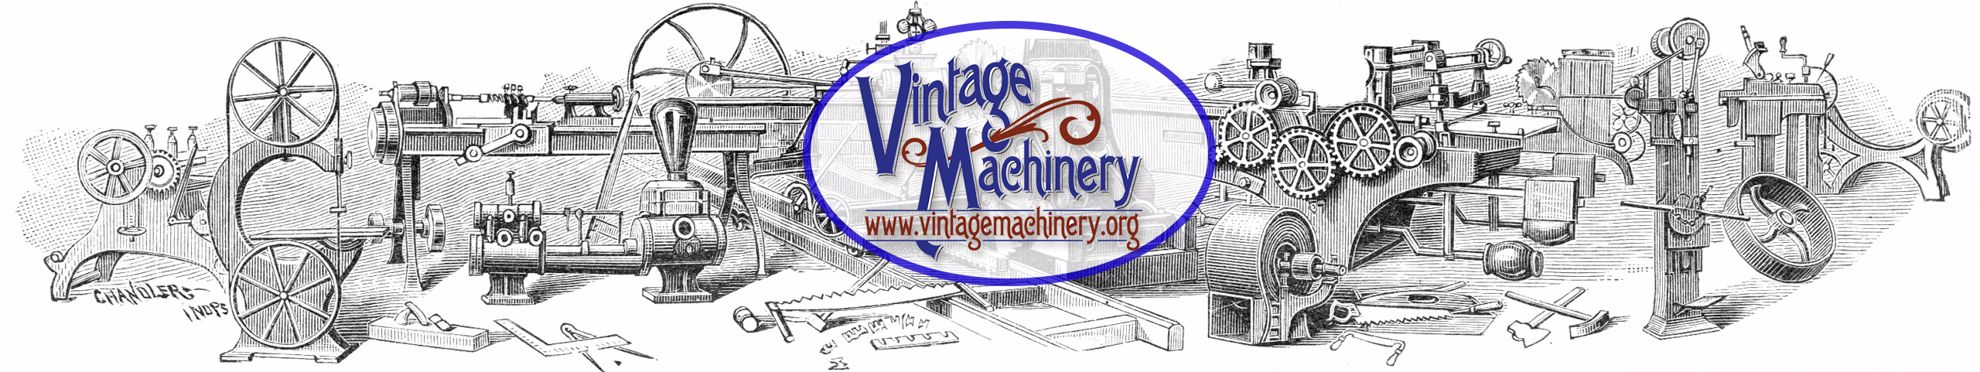 vintagemachinery.org Store